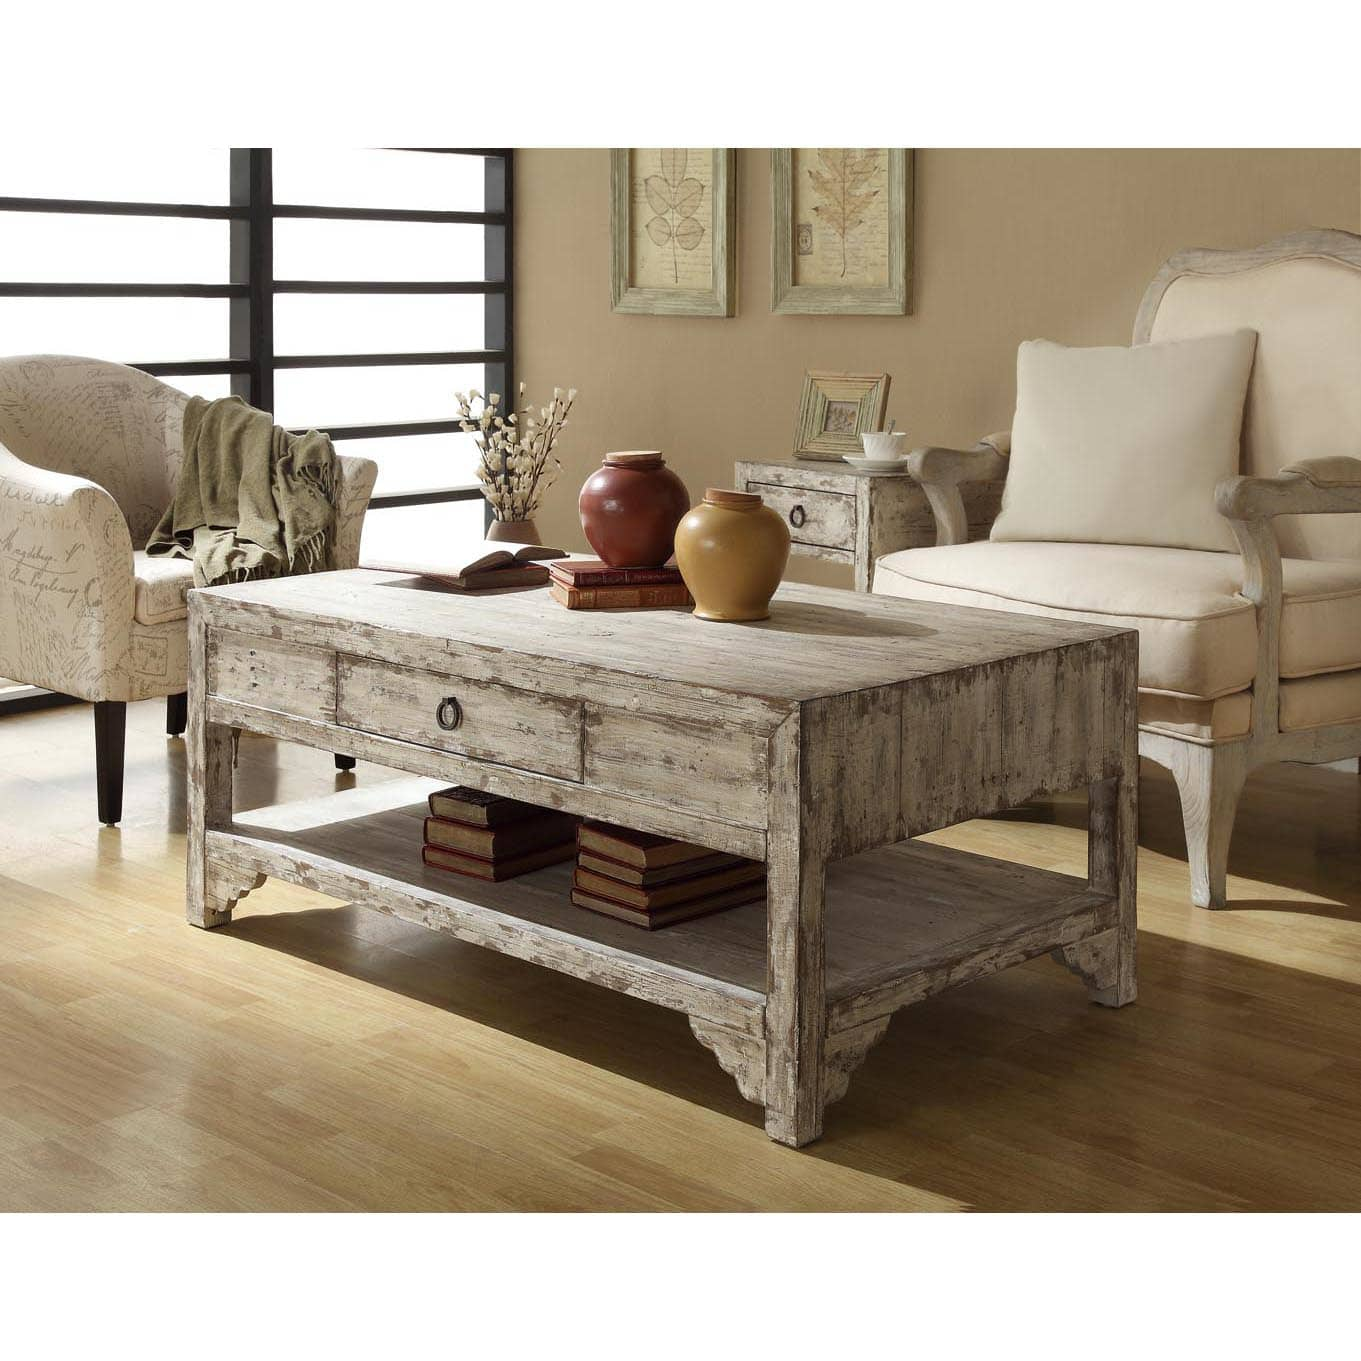 mixed taupe reclaimed wood long accent table free iron rustic tables ikea nightstand narrow lamp carolina furniture butler tray small barn door hardware glass living room set